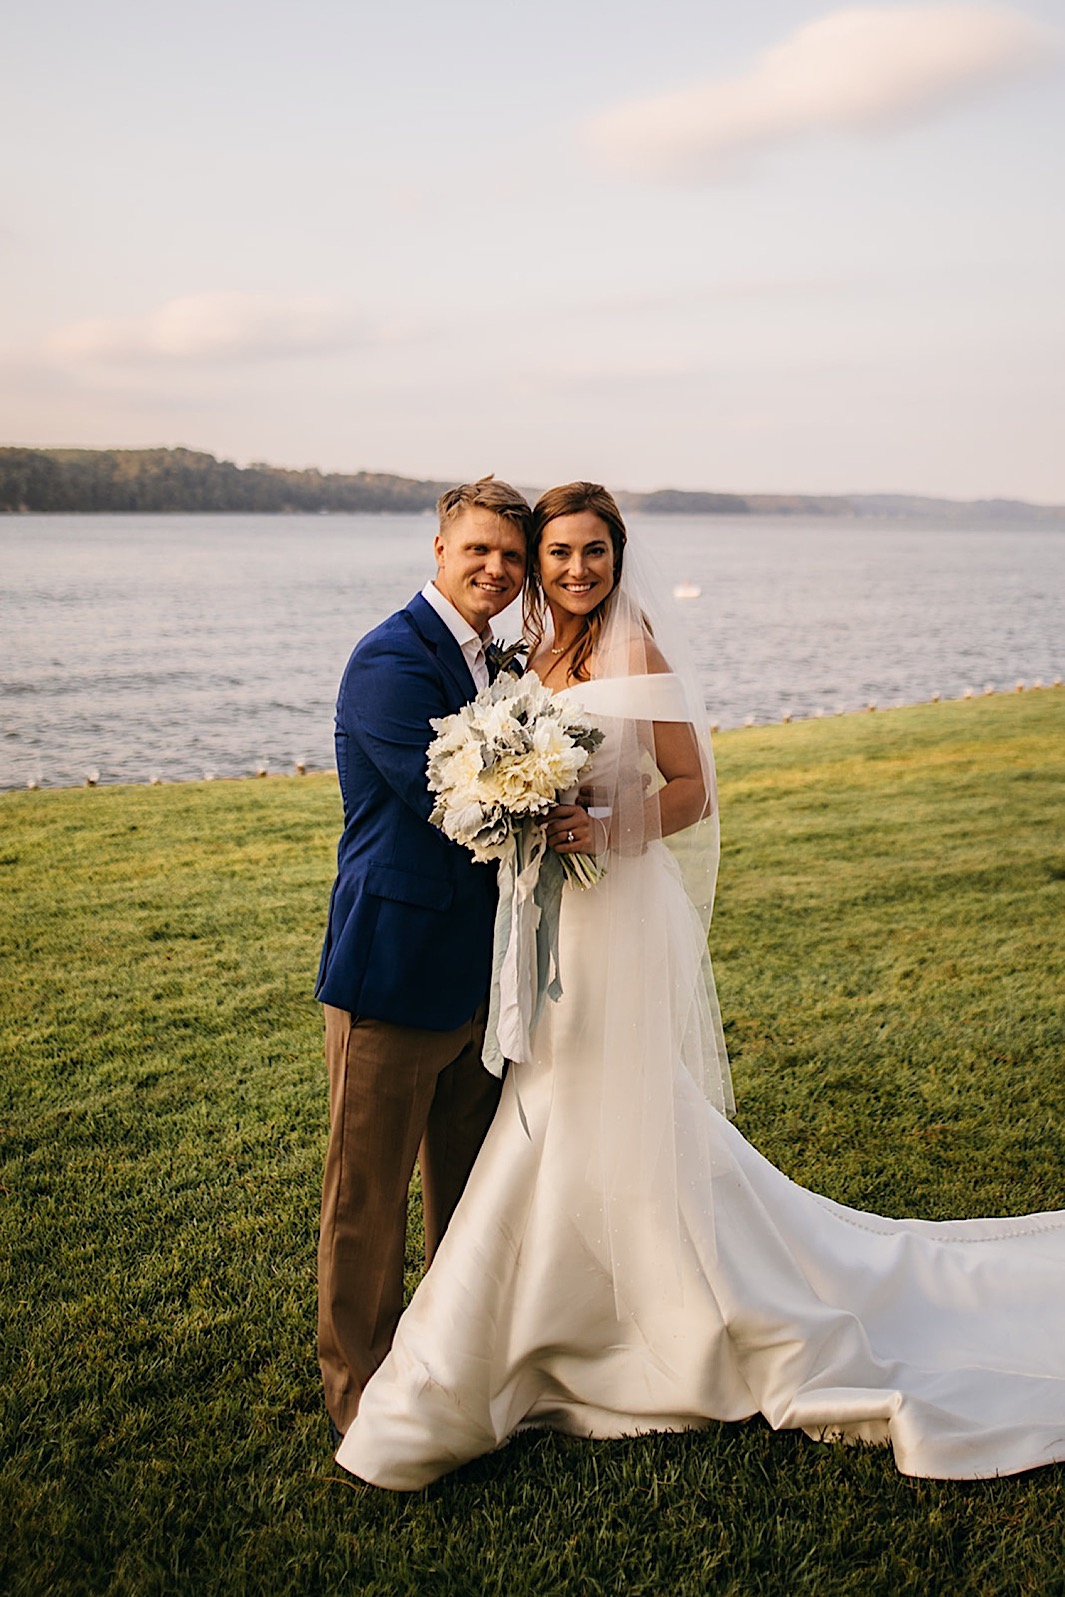 A bride and groom embrace and smile for a photo on a lawn in front of a lake.